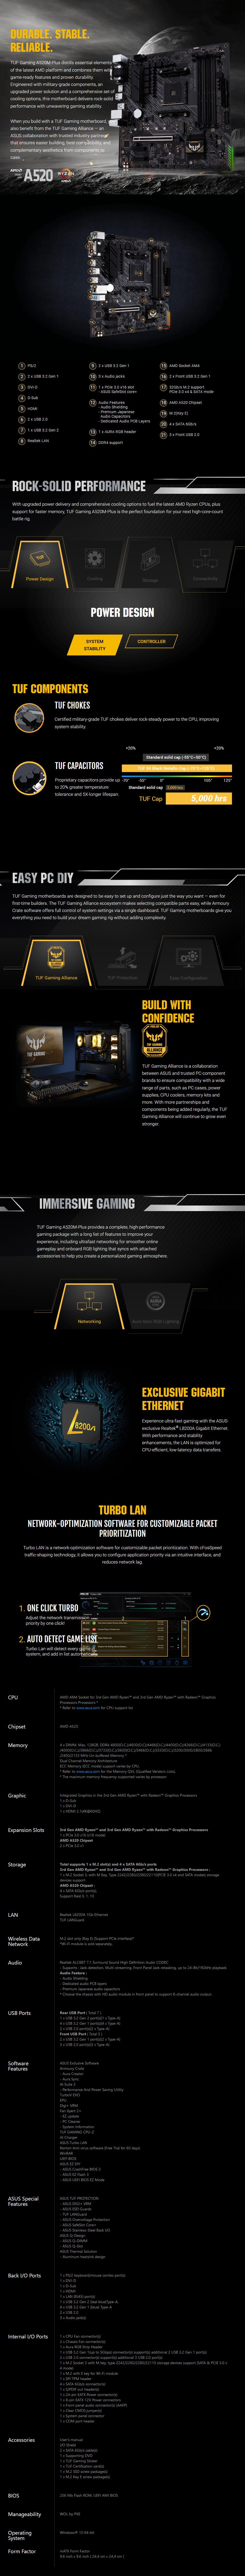 ASUS TUF GAMING A520M-PLUS AM4 Micro-ATX Motherboard - Overview 1